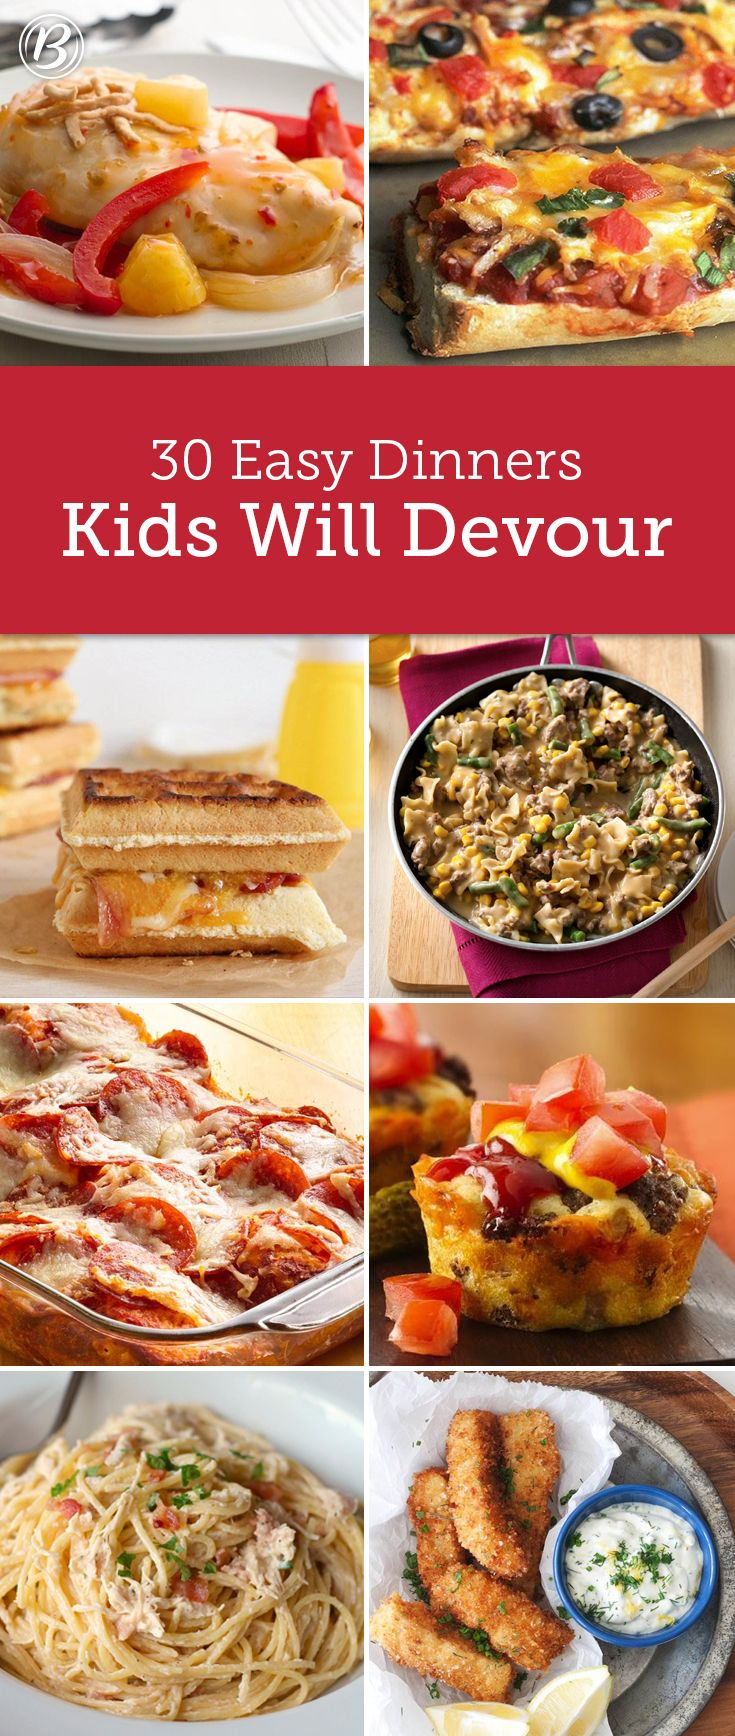 30 Easy Dinners Kids Will Devour Kid Friendly Meals Baby Food Recipes Family Meals